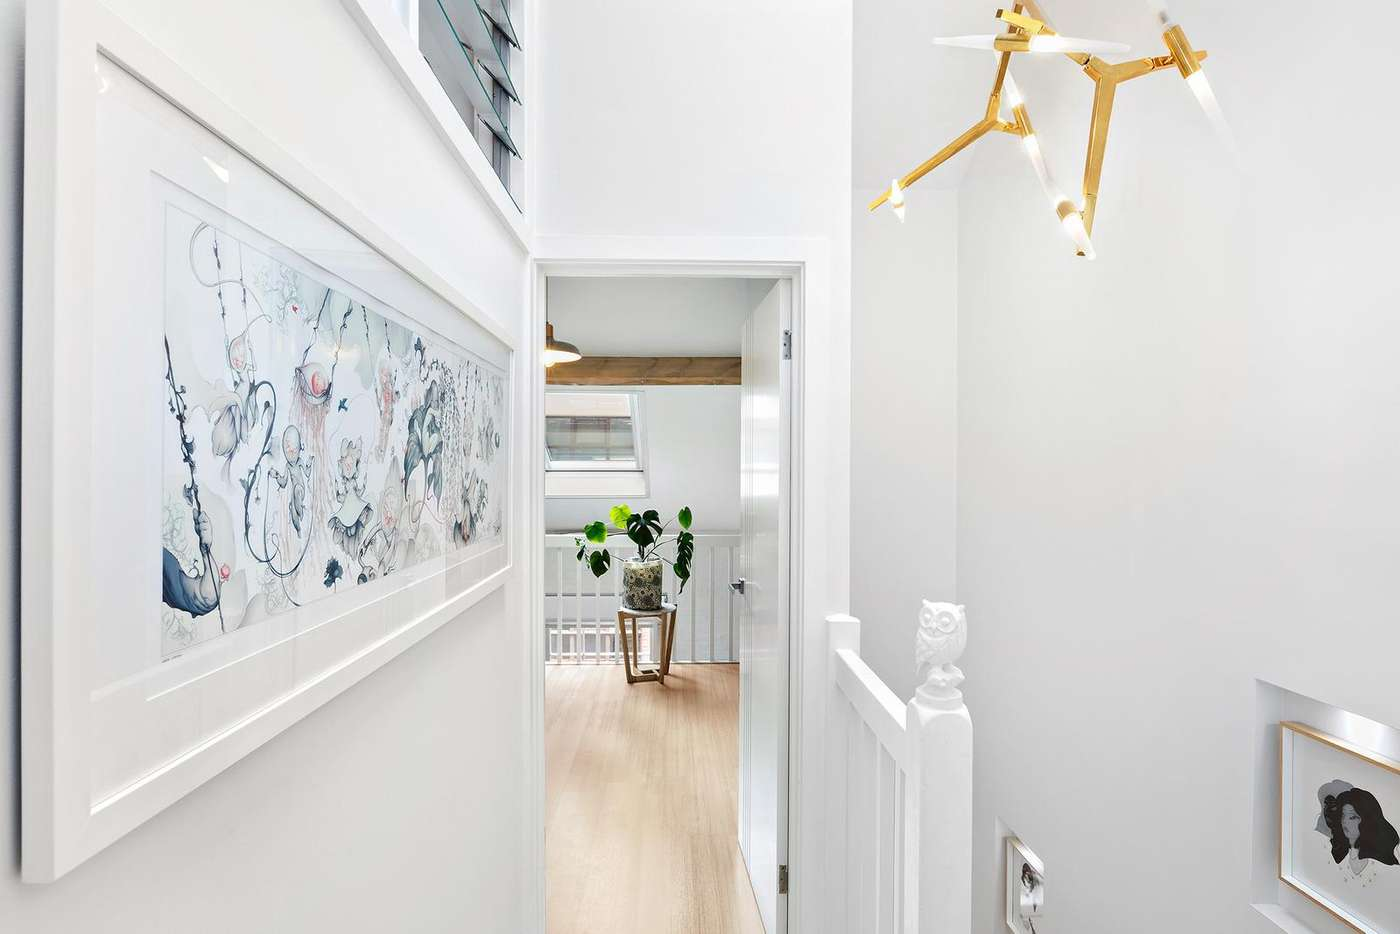 Fifth view of Homely apartment listing, 16/79-81 Franklin Street, Melbourne VIC 3000